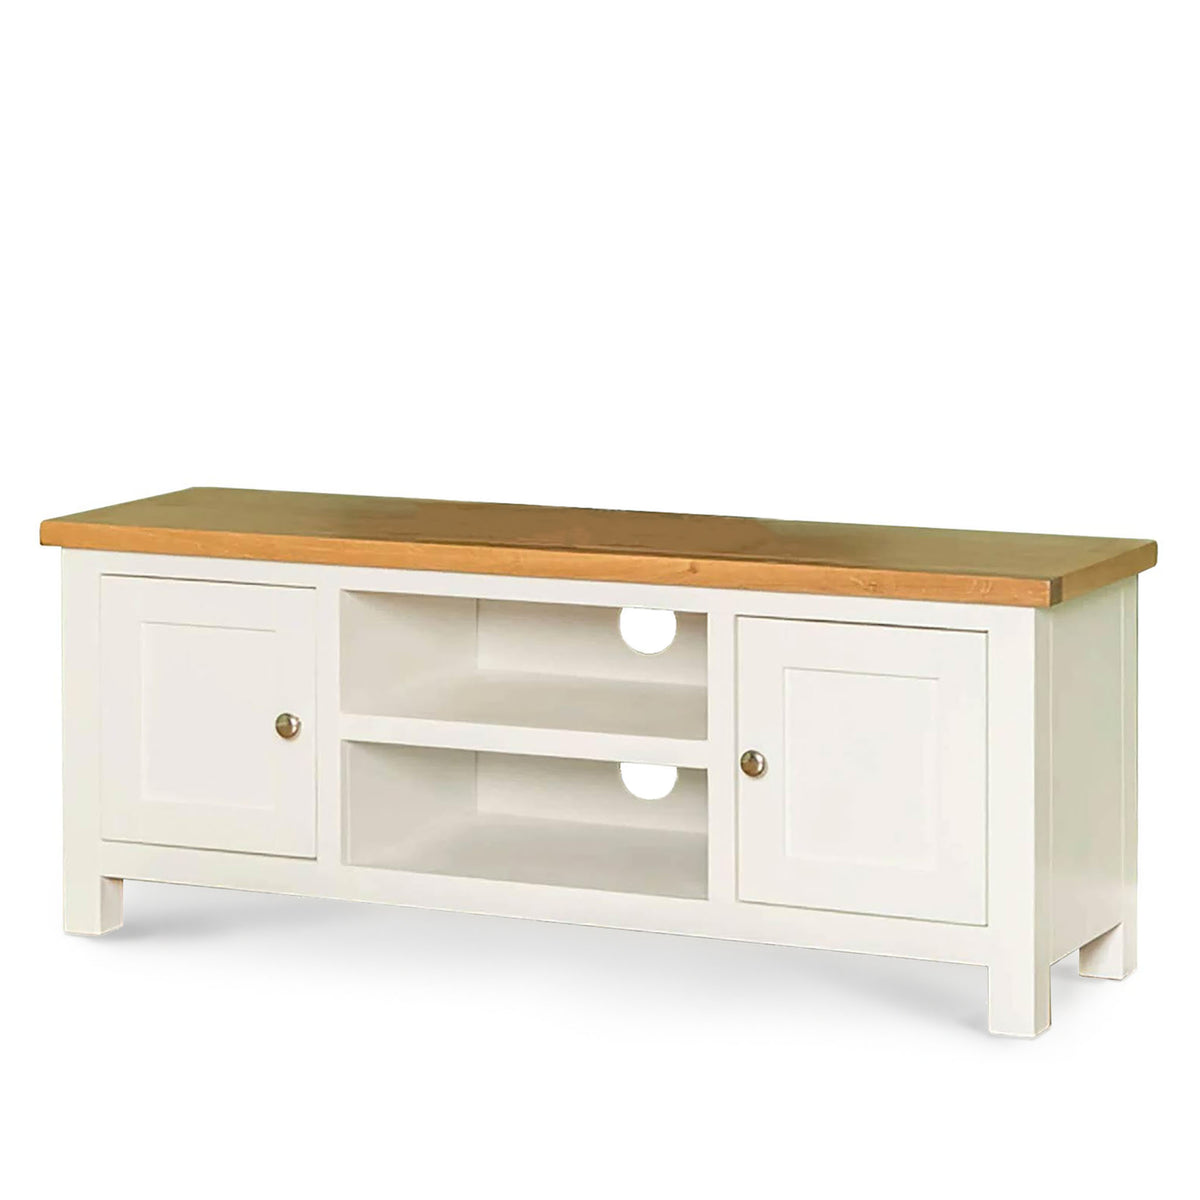 Farrow white 120cm TV Stand  - Side view